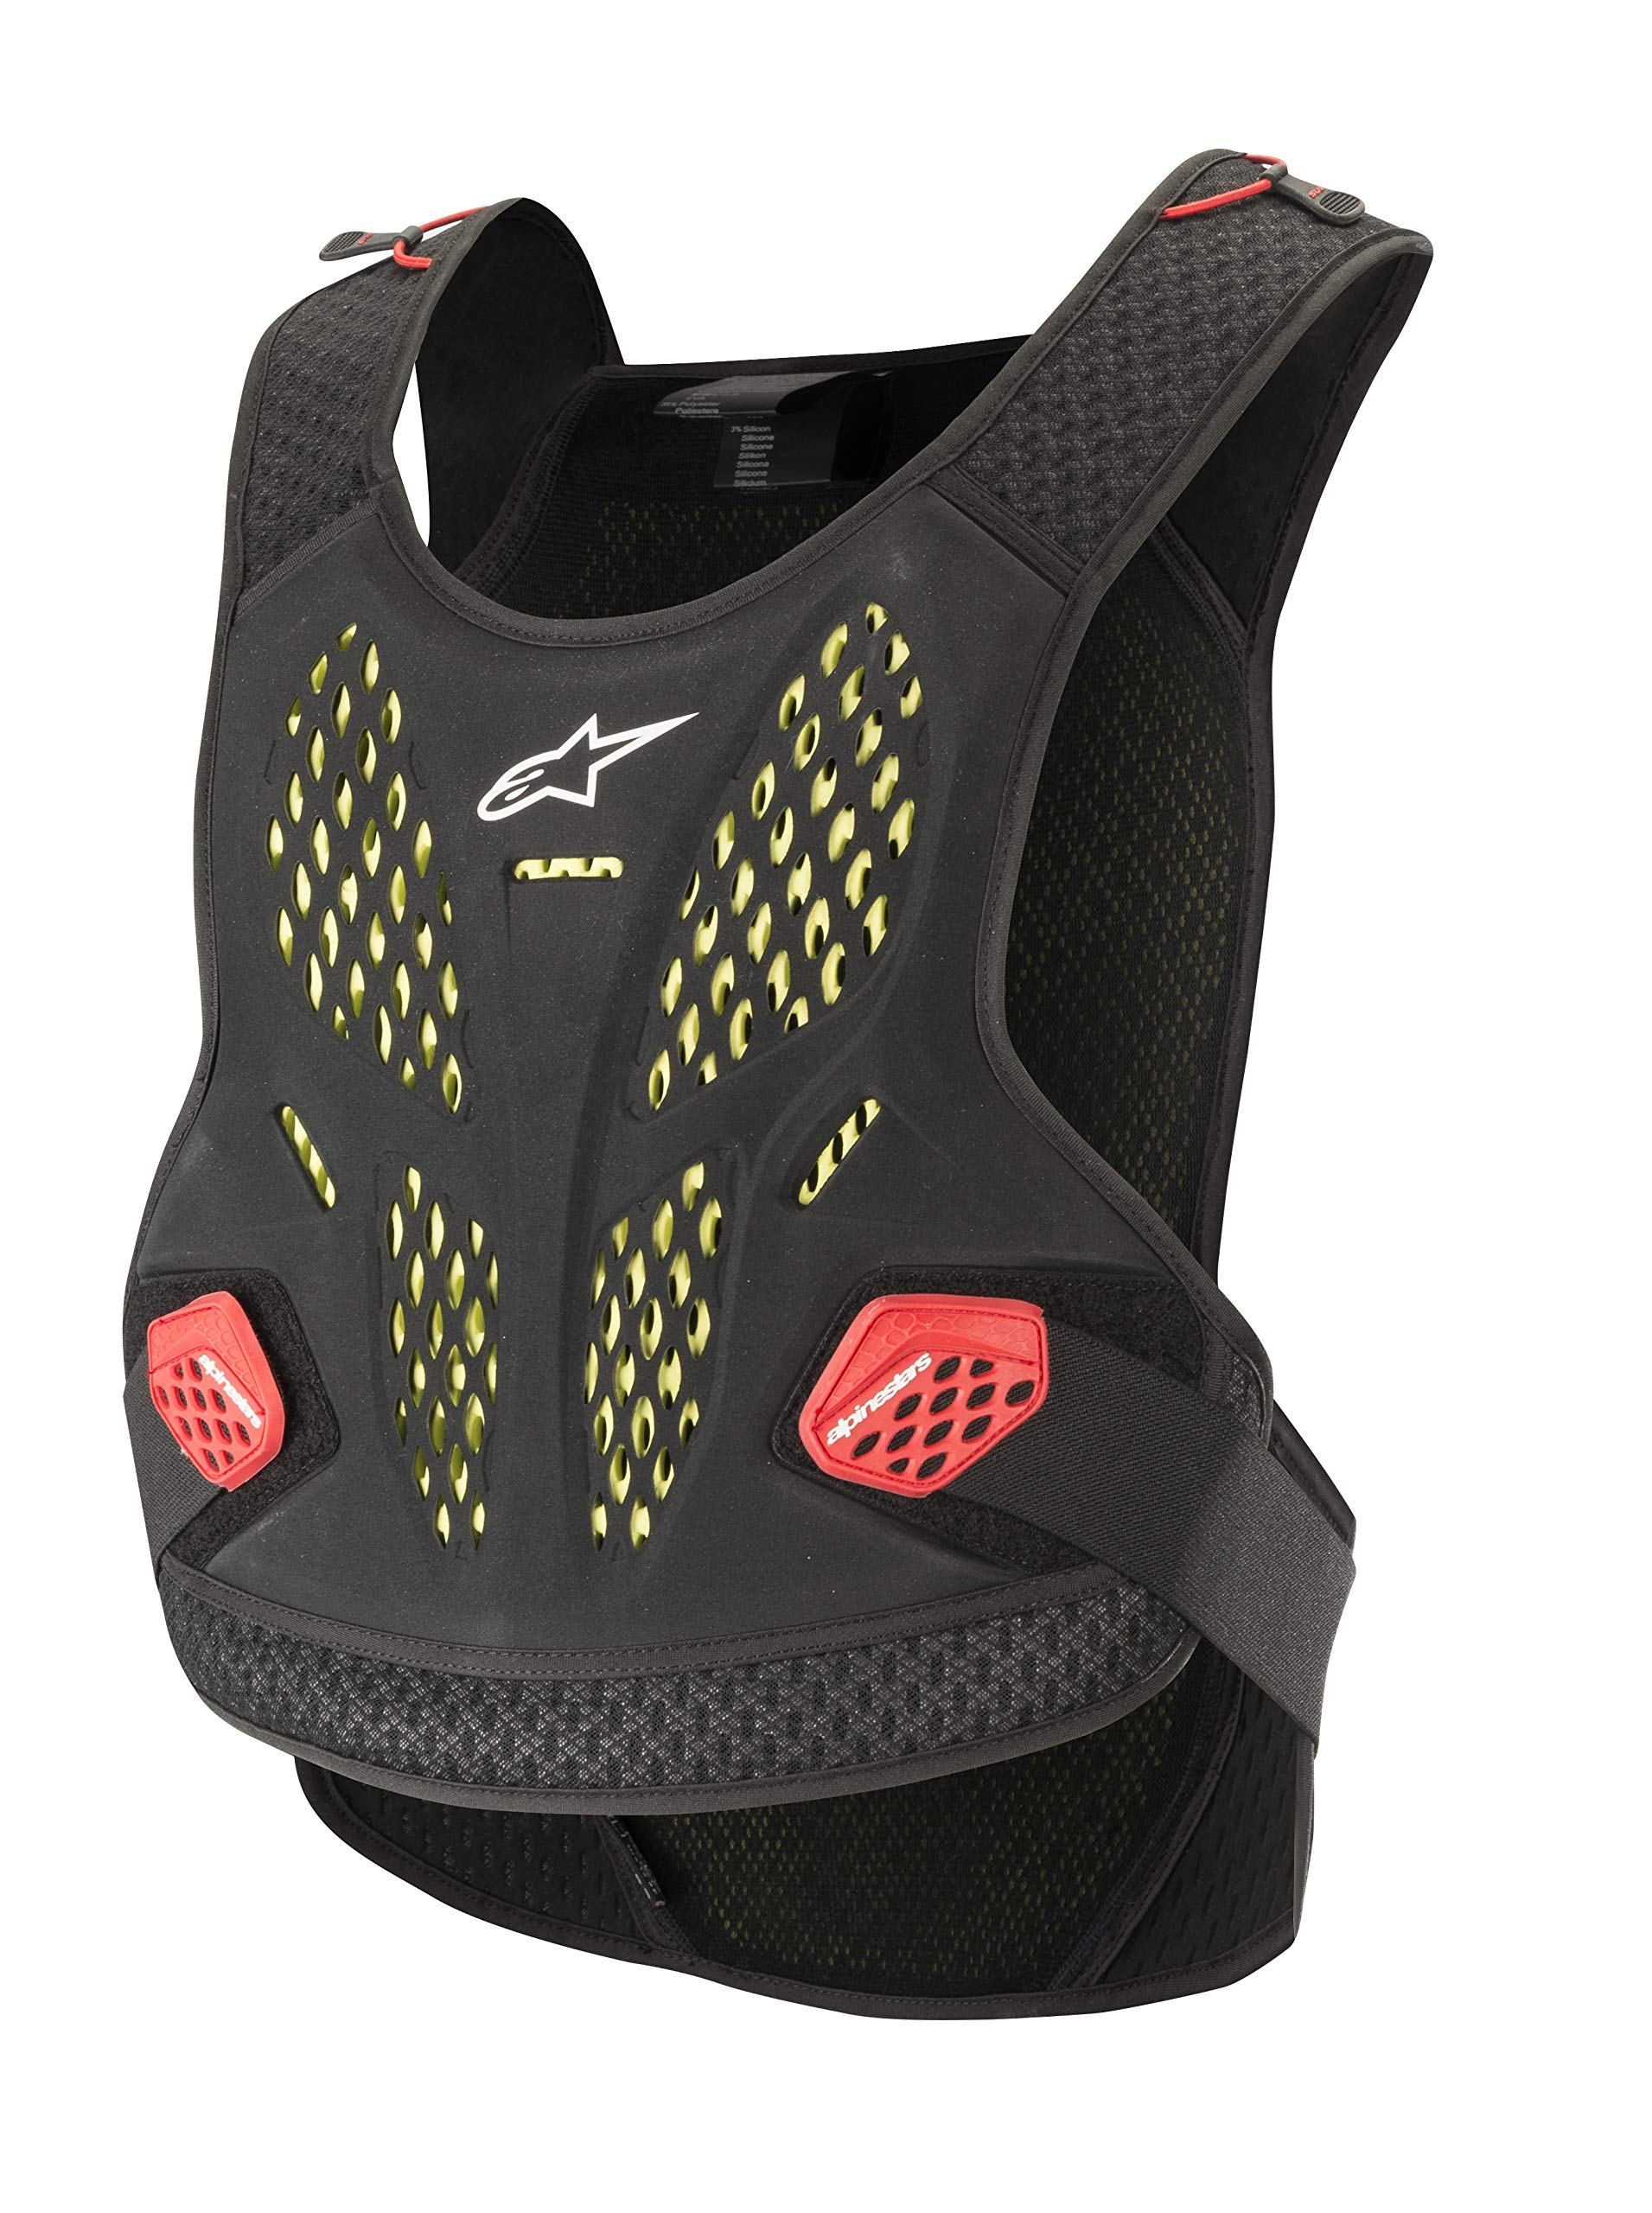 Sequence Off-Road Motocross Chest Protector (Extra Small/Small, Anthracite Red)